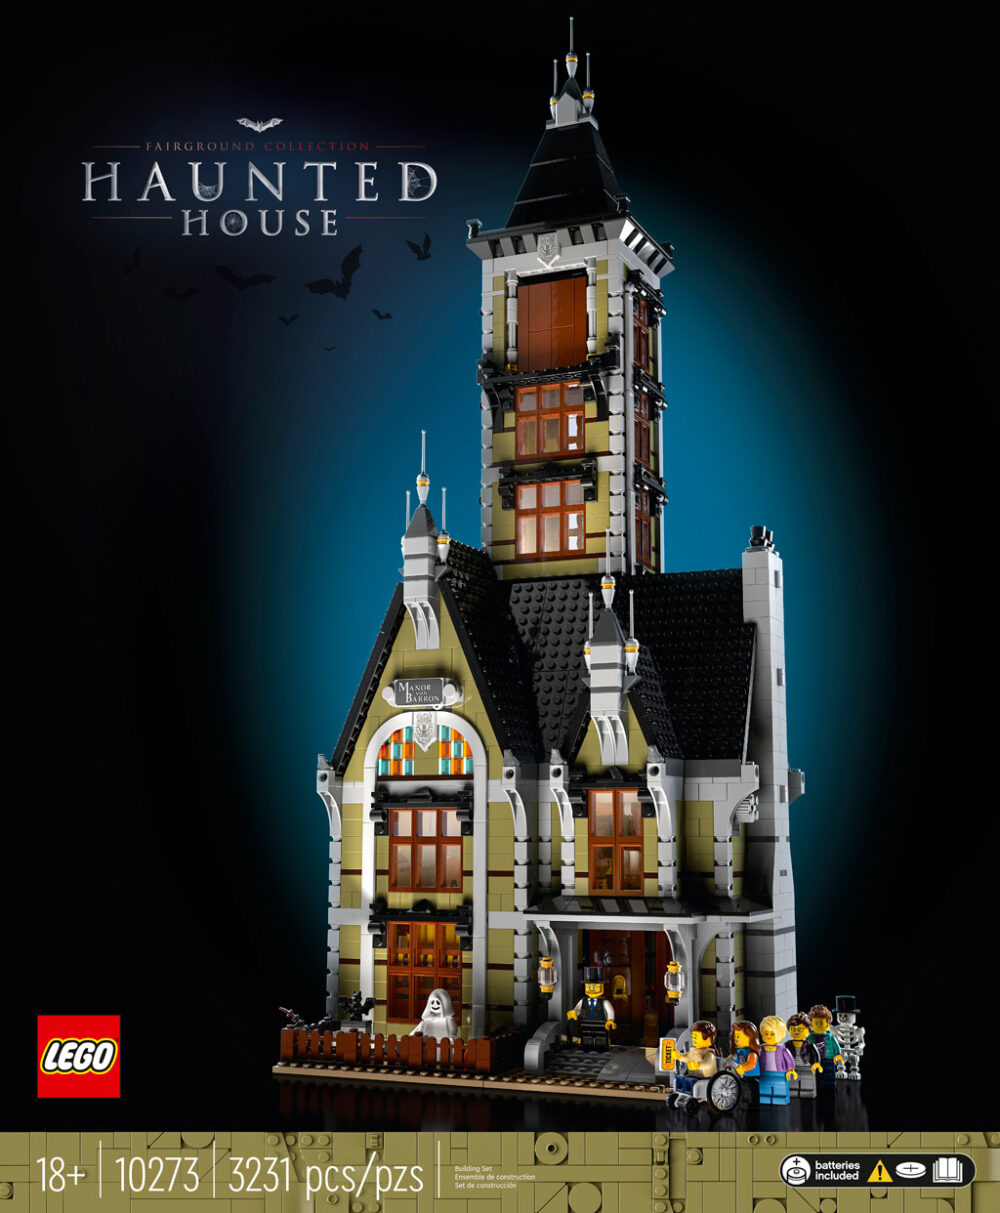 lego-fairground-collection-10273-haunted-house-spukhaus-2020 zusammengebaut.com